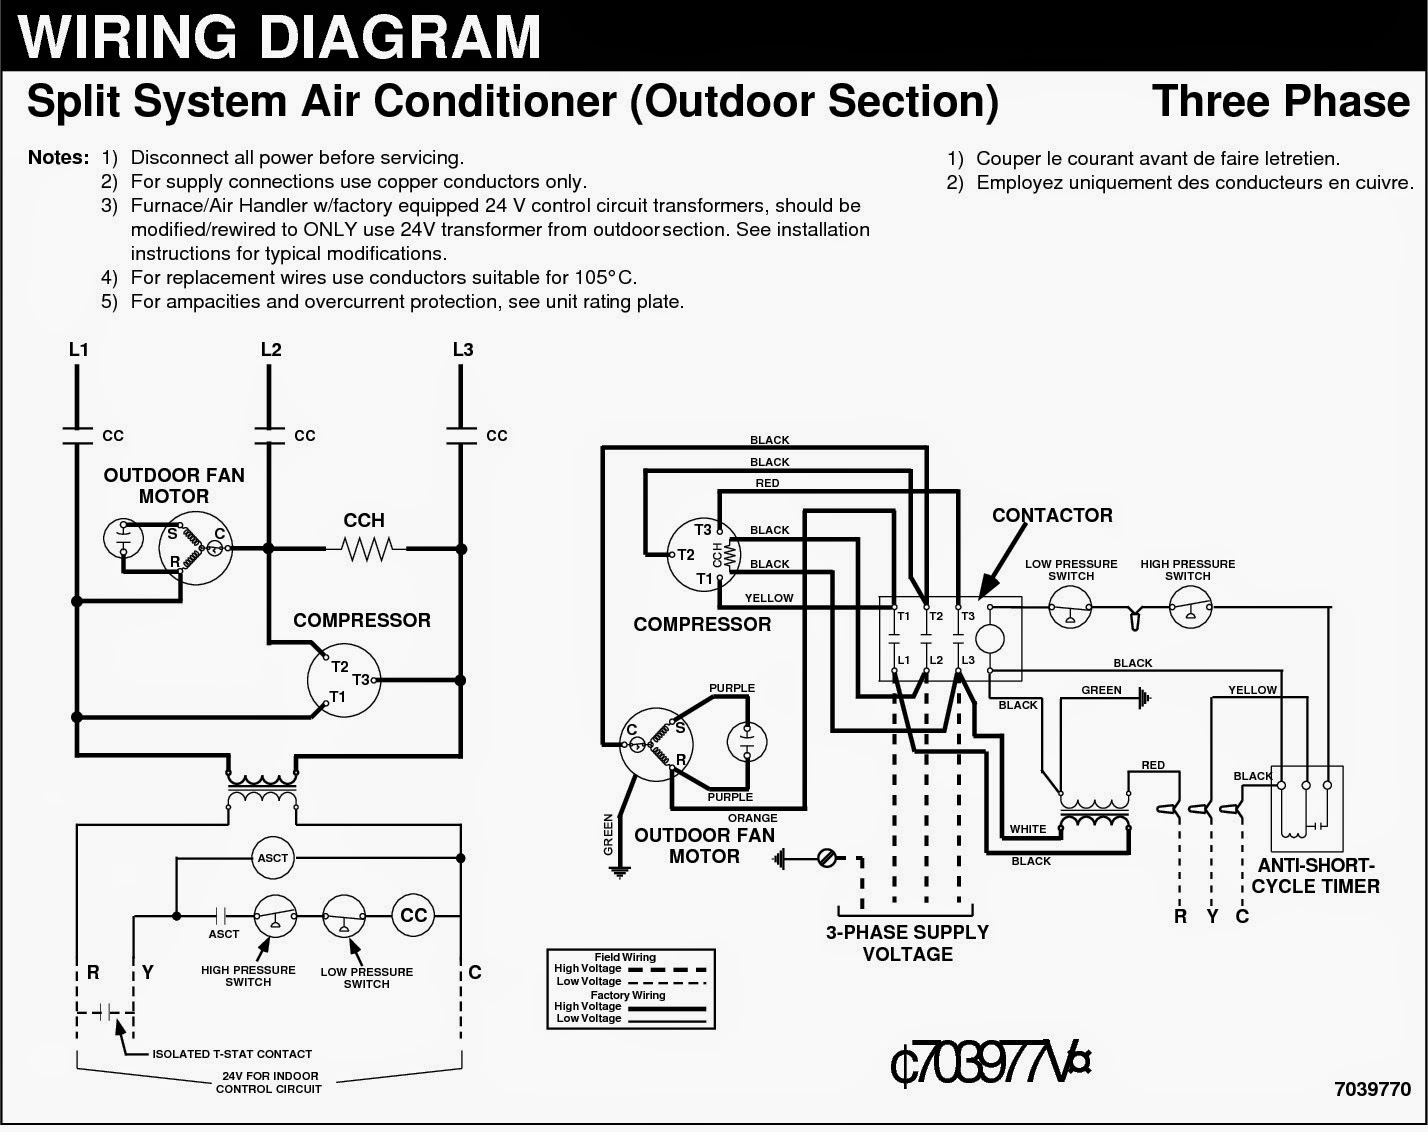 3+phase electrical wiring diagrams for air conditioning systems part two samsung air conditioner wiring diagram at gsmx.co